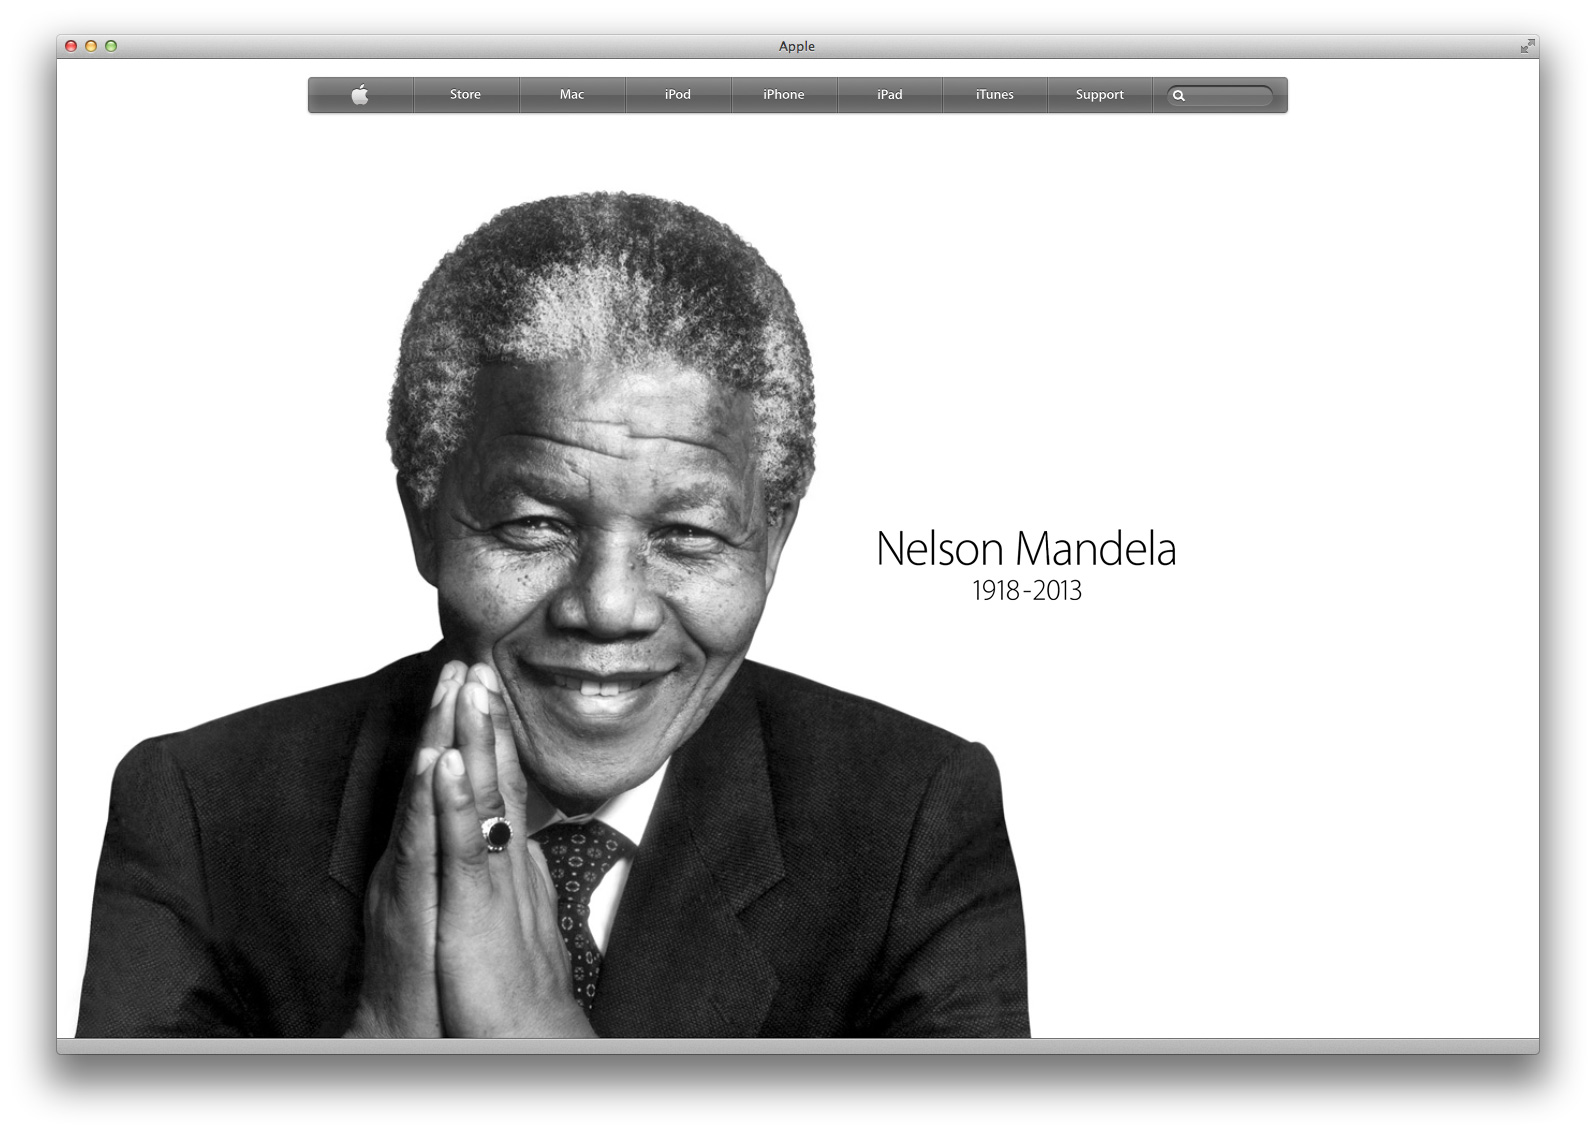 Apple Nelson Mandela